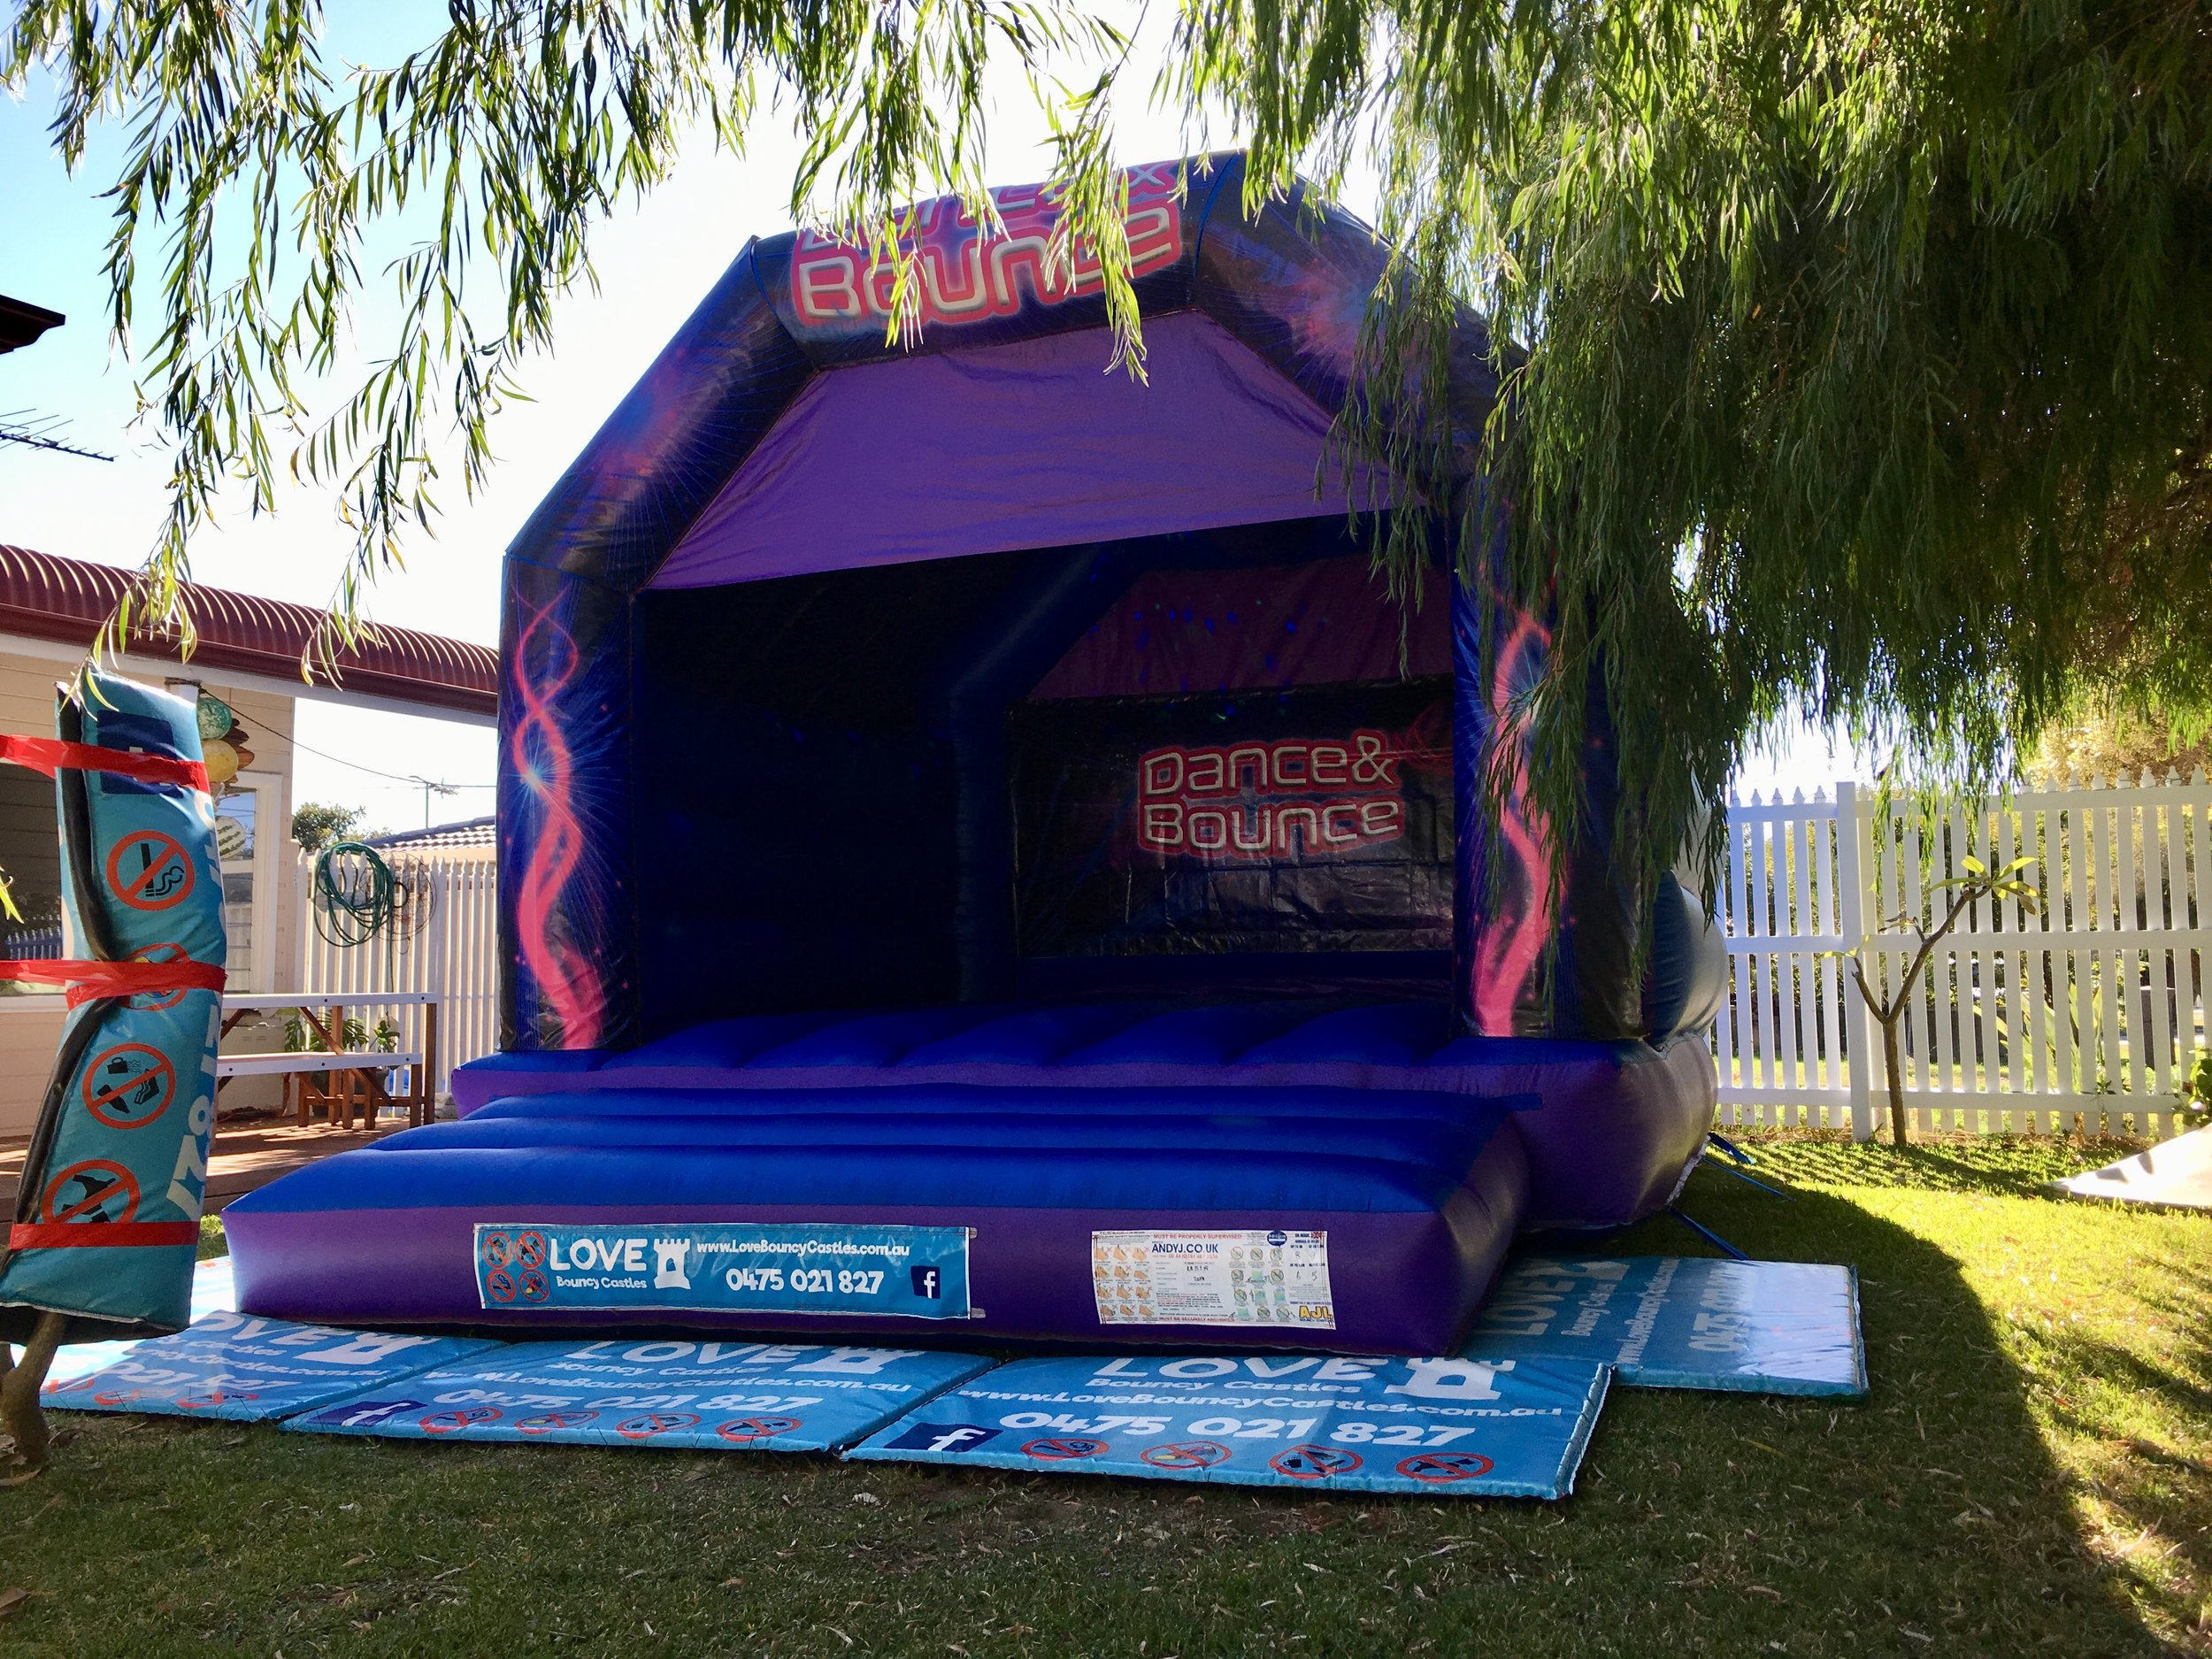 Dance And Bouncy Jumping Castle Set Up In Warnbro, Rockingham, WA